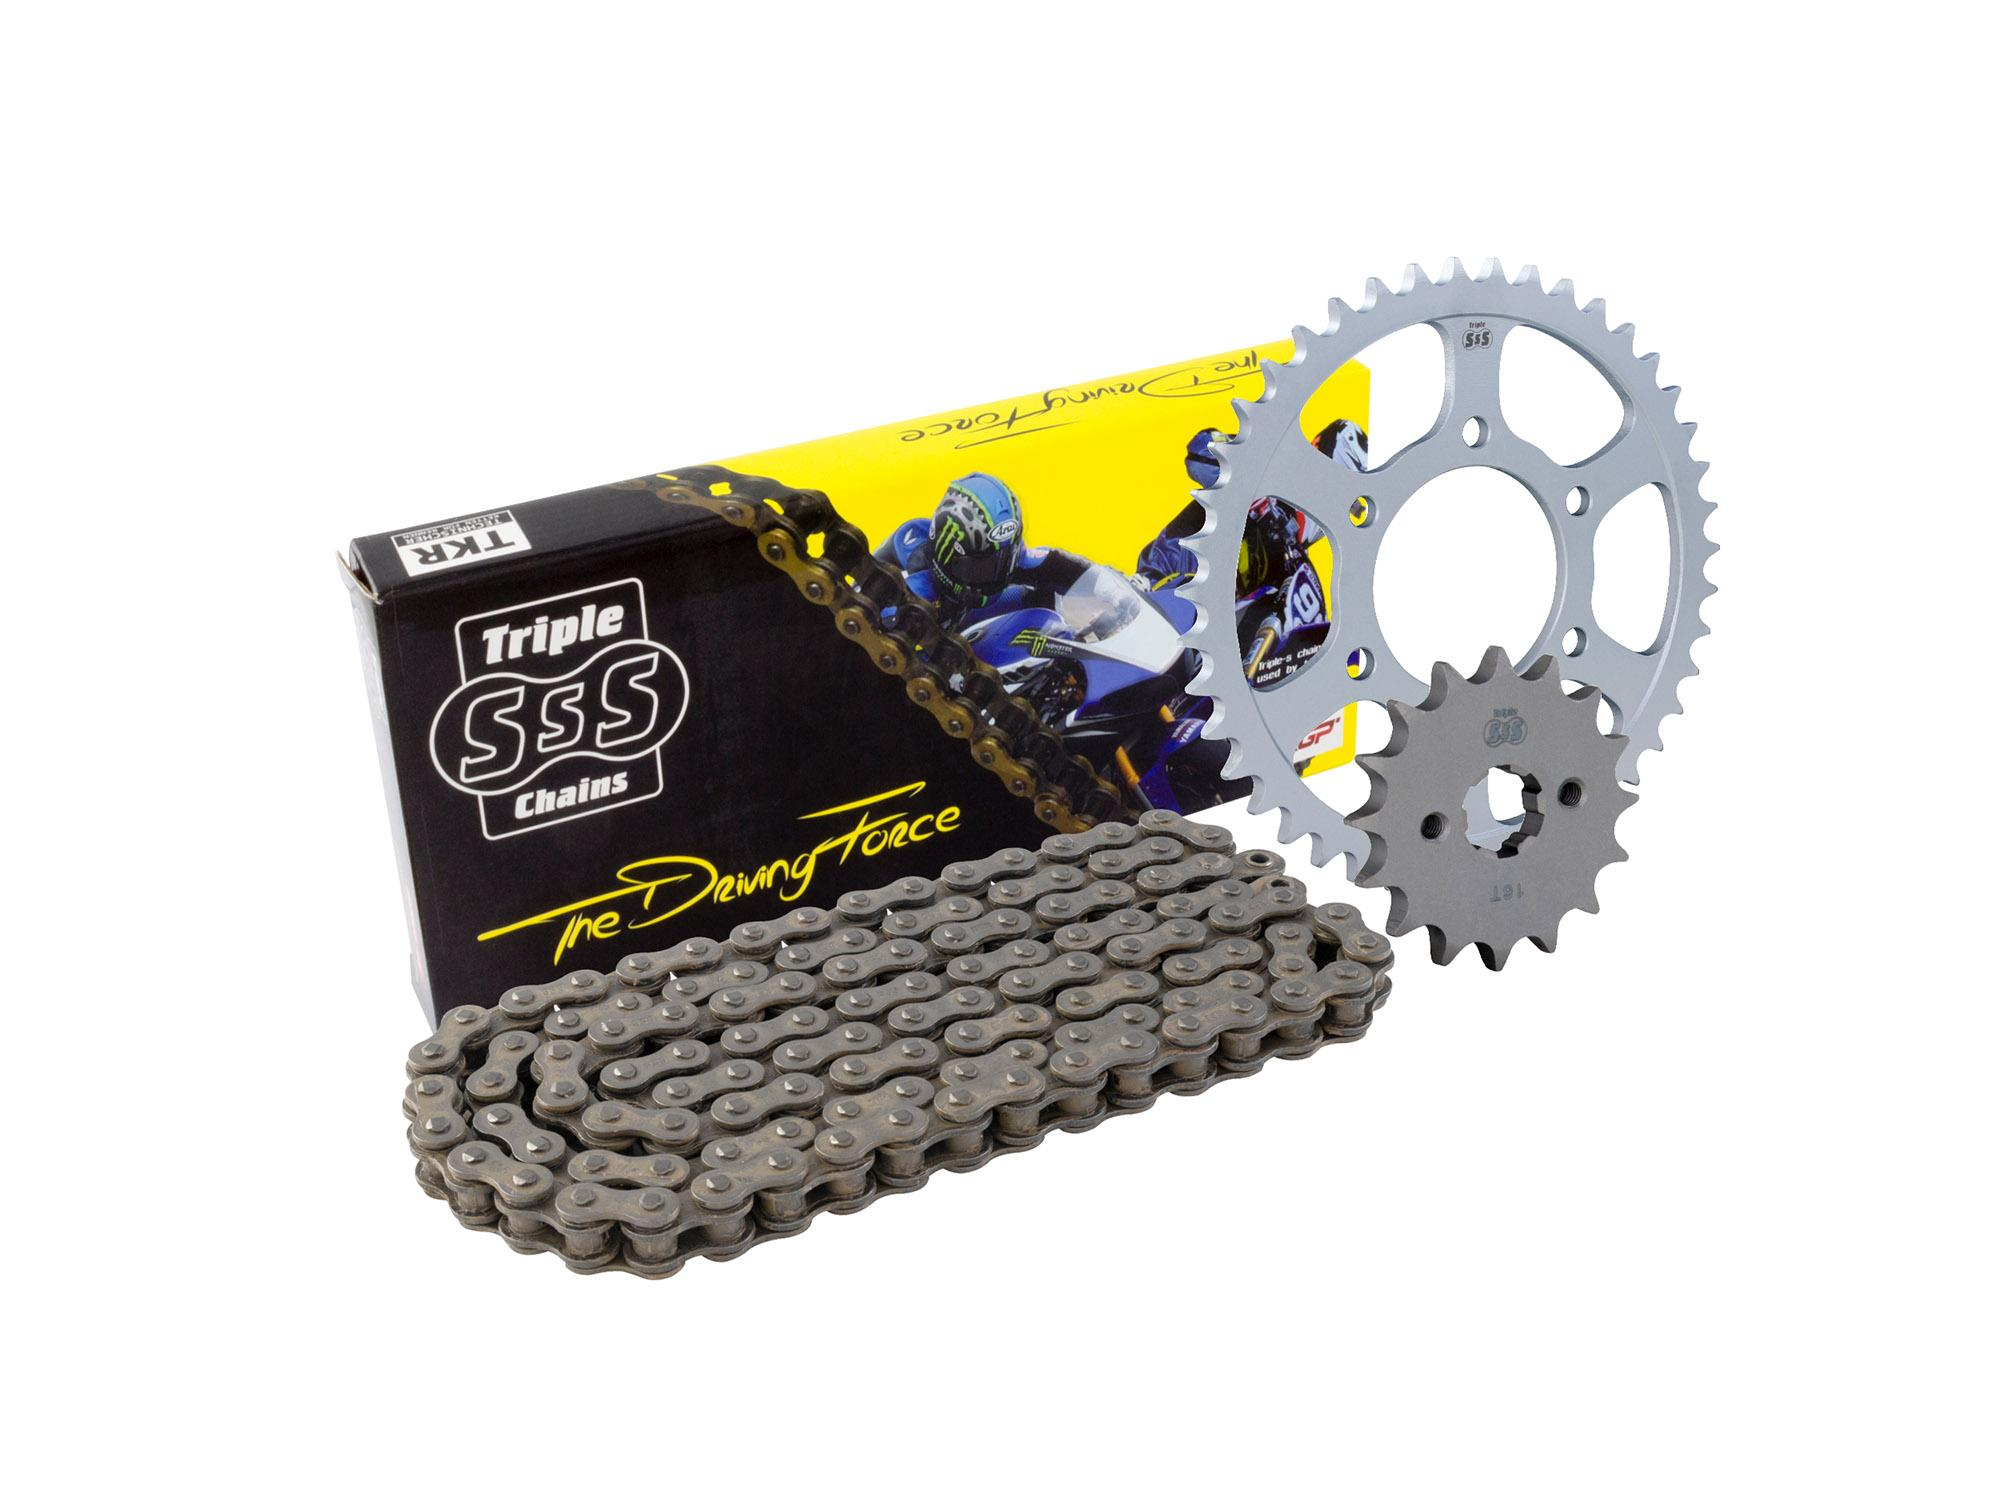 Ducati 900 Monster ie 02 Chain & Sprocket Kit: 15T Front, 38T Rear, HD O-Ring Black Chain 520H 100Link